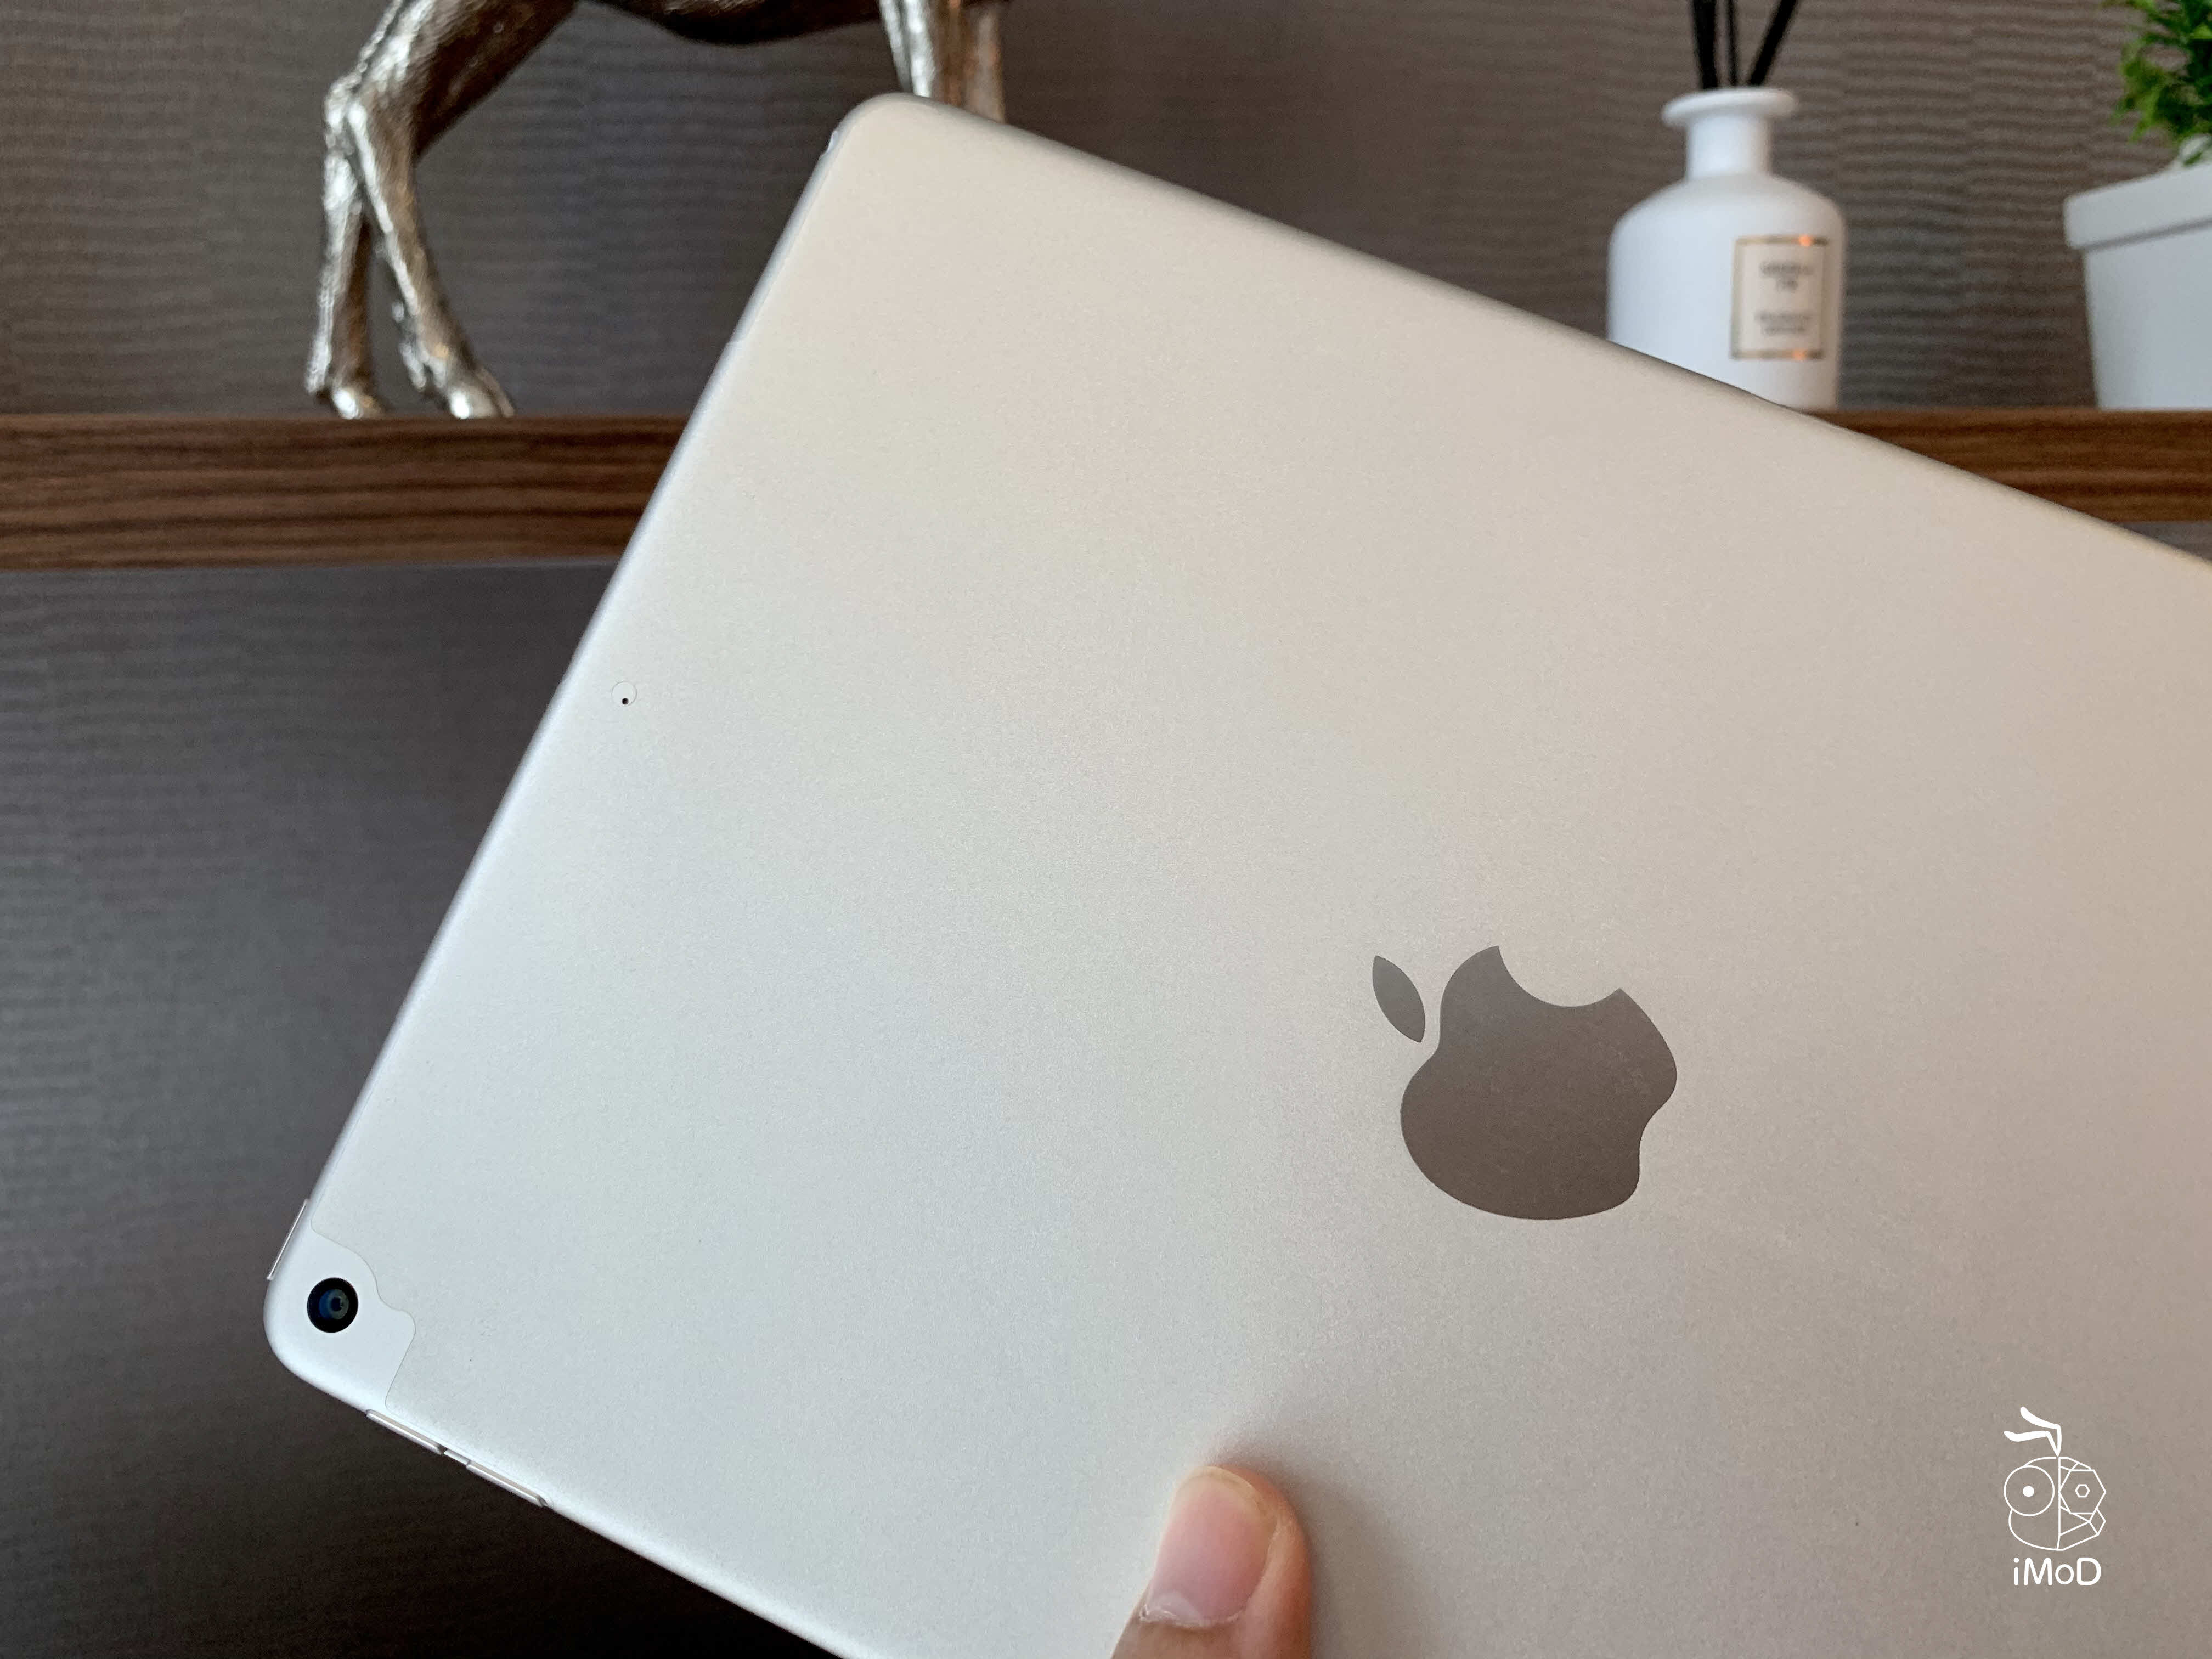 Deco Shield Back Protection For Ipad Review 026